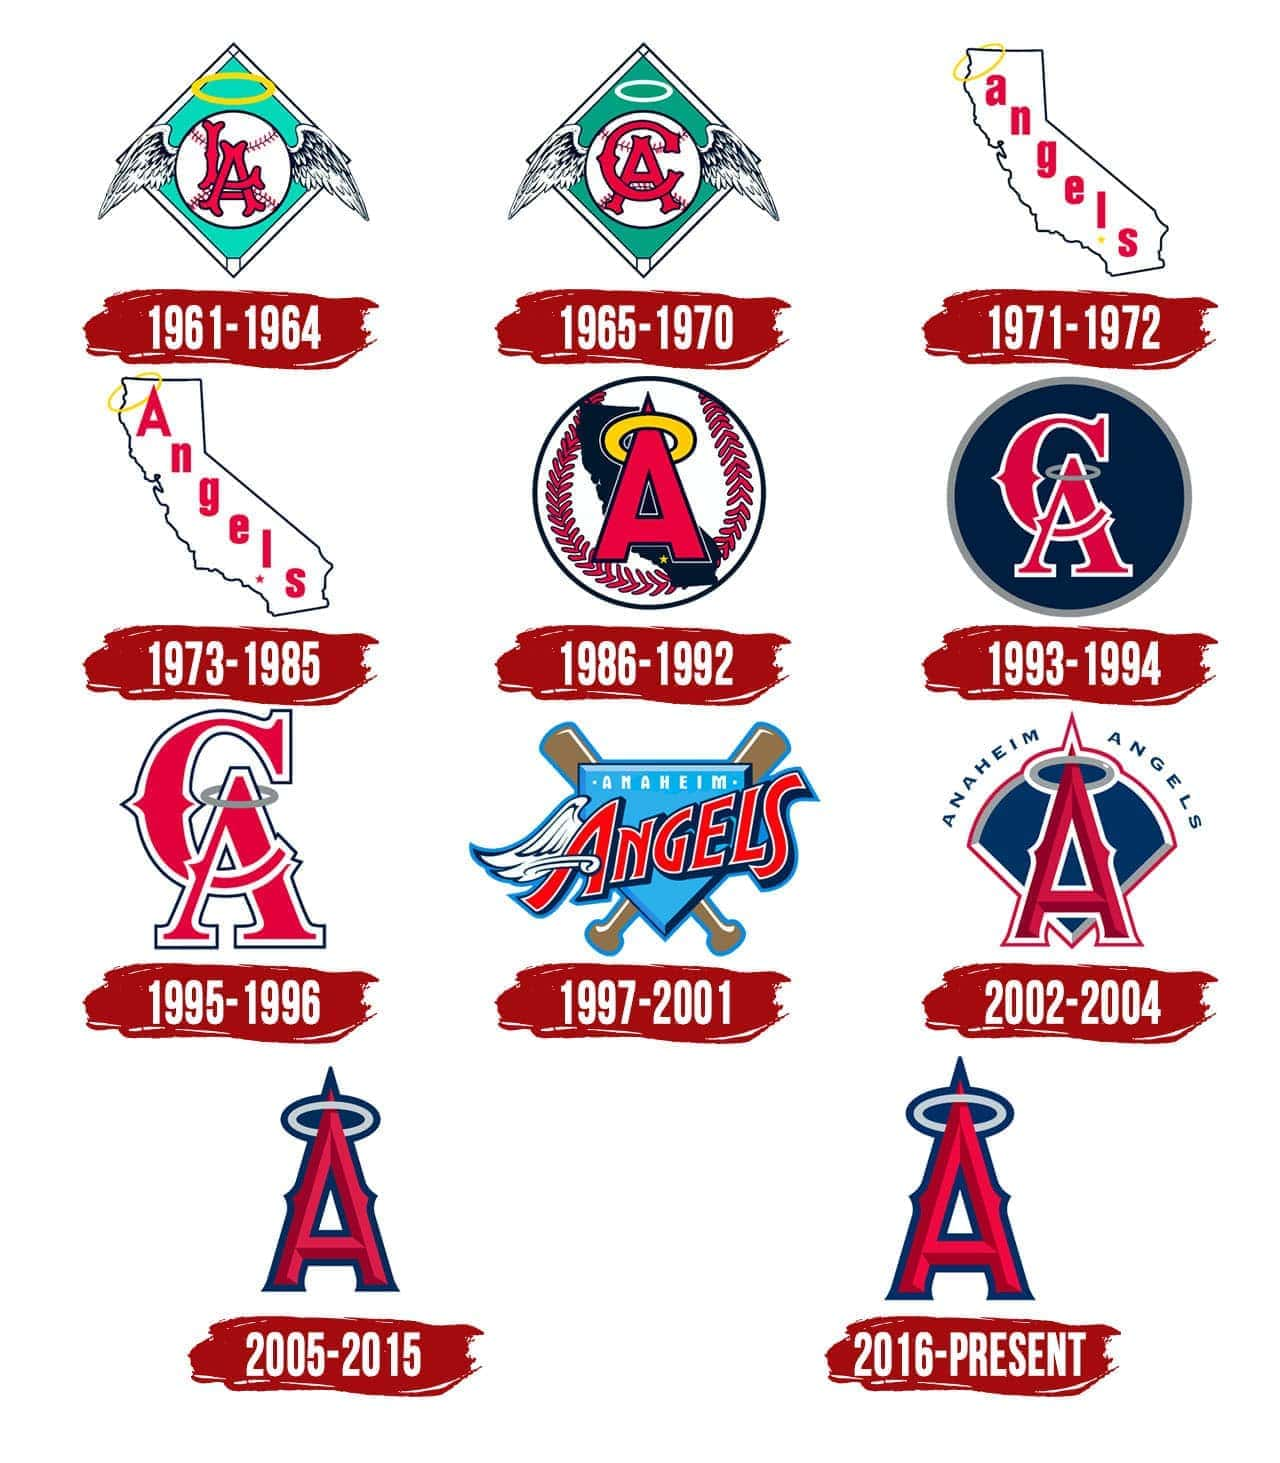 Los Angeles Angels Logo History The Most Famous Brands And Company Logos In The World